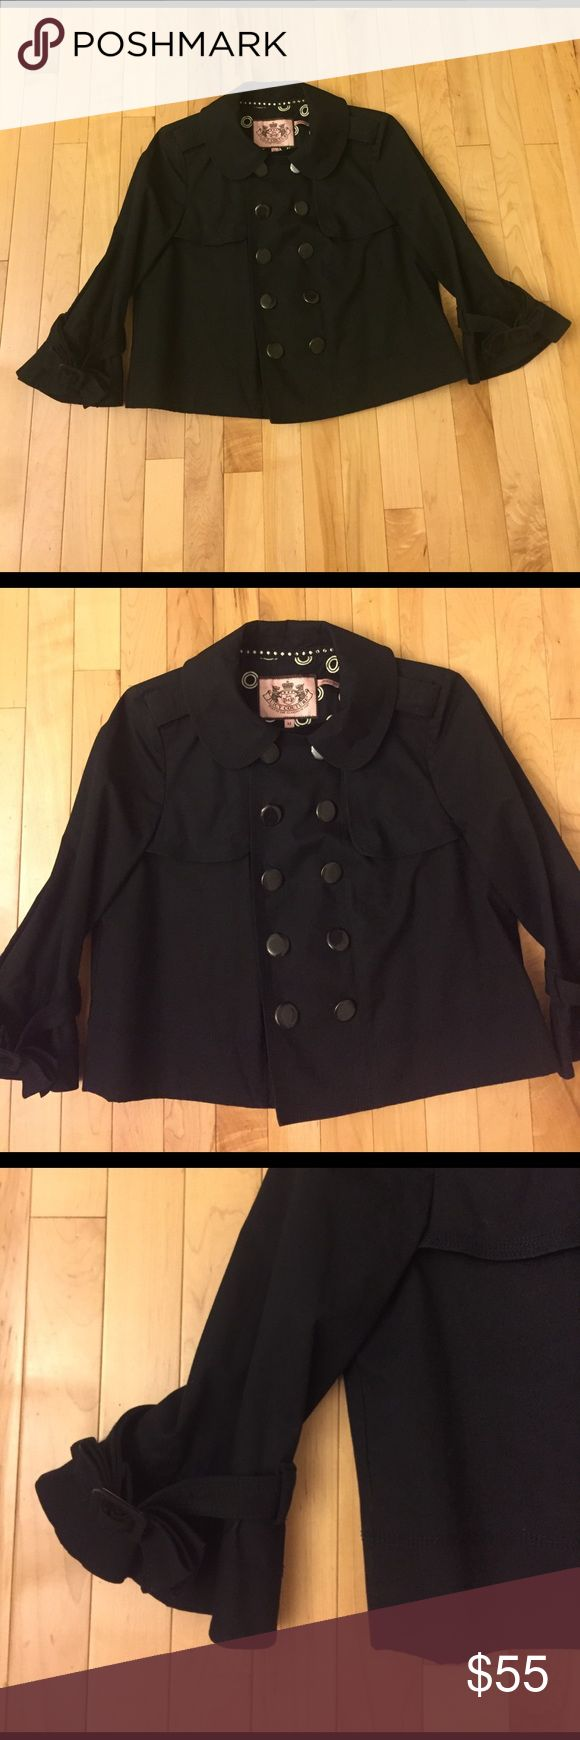 Juicy Couture Black Military Jacket Size M This Juicy Couture black cropped military jacket is in like new condition, only worn once. No stains, rips or odors. Juicy Couture Jackets & Coats